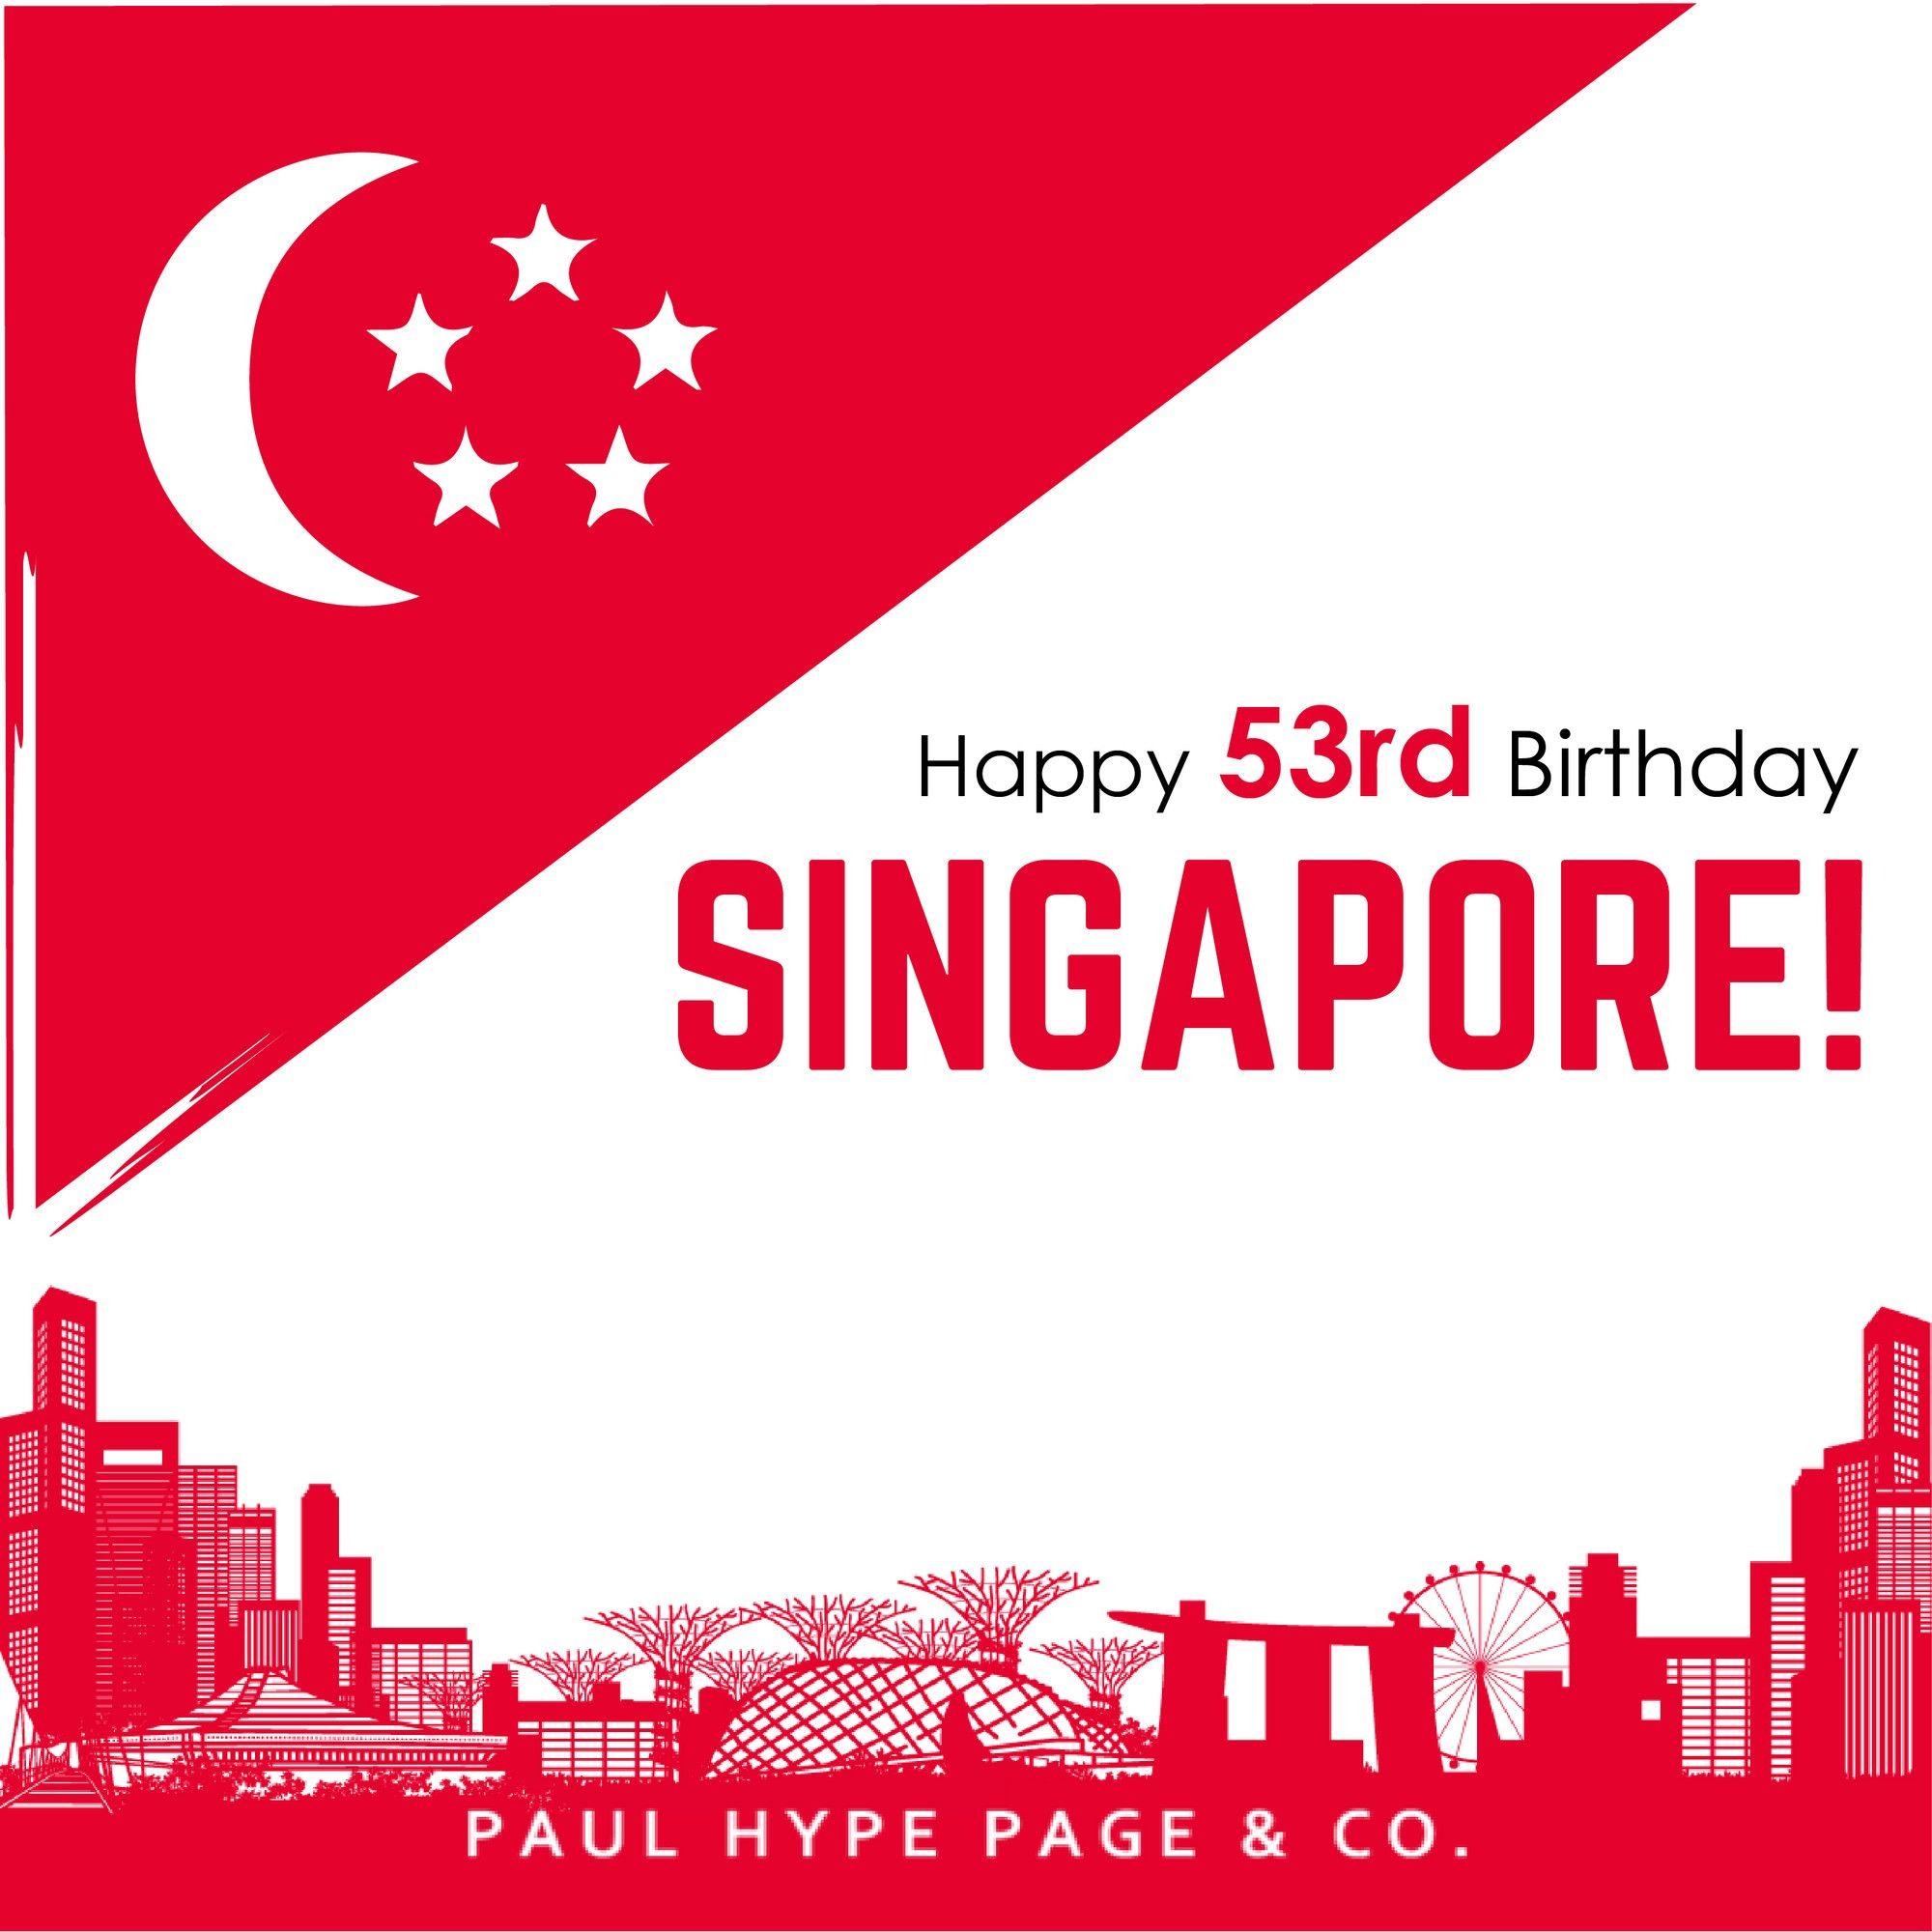 Today Singapore celebrates its 53rd National Day! We take